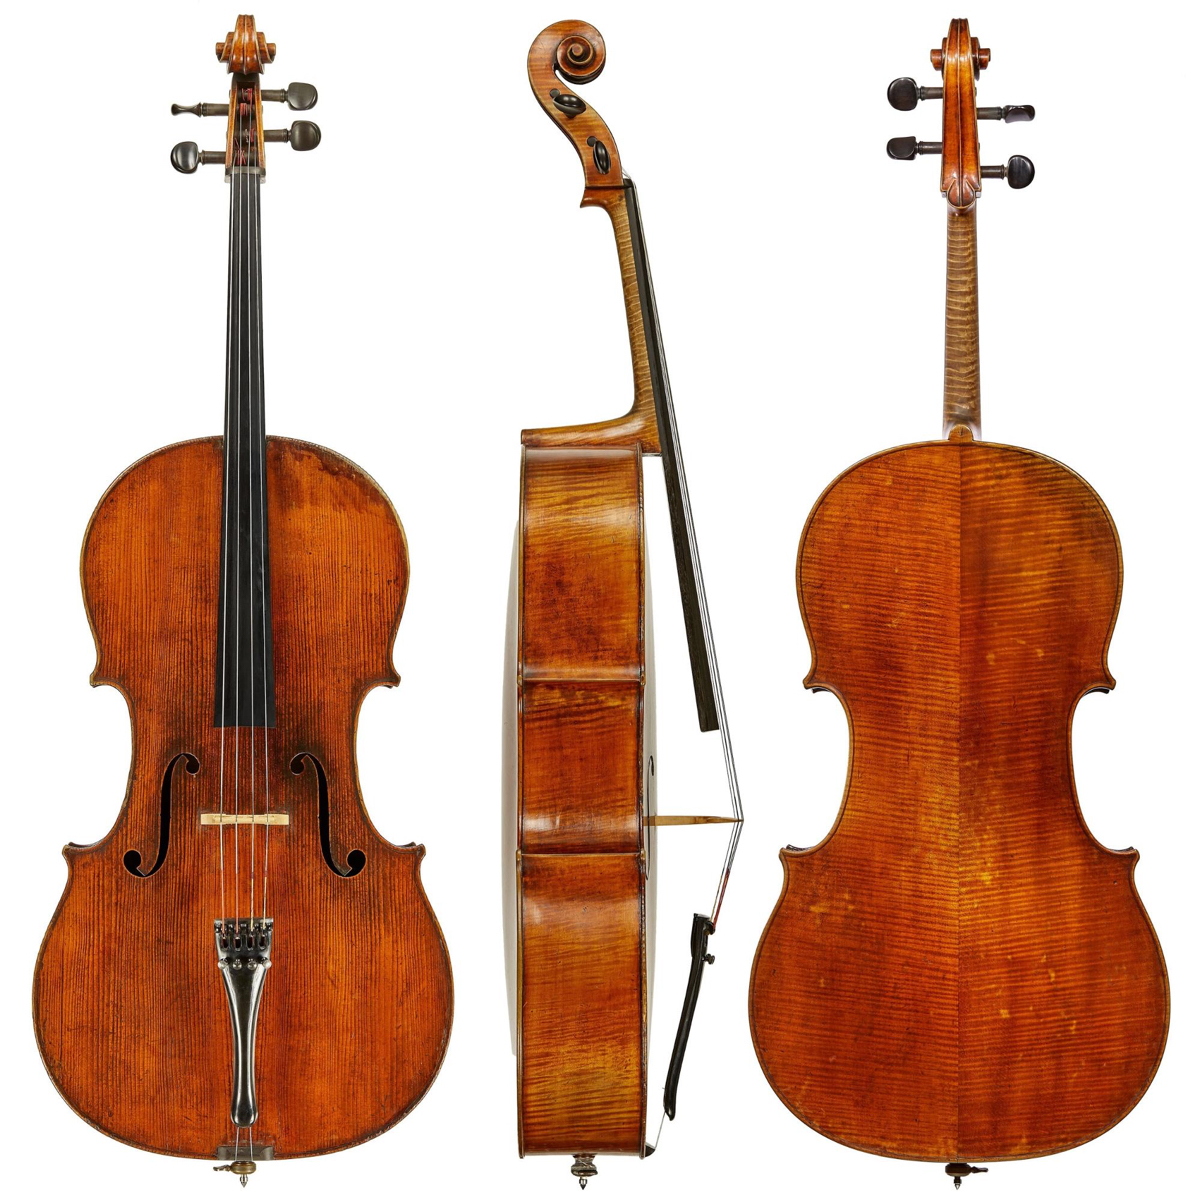 Vuillaume cello